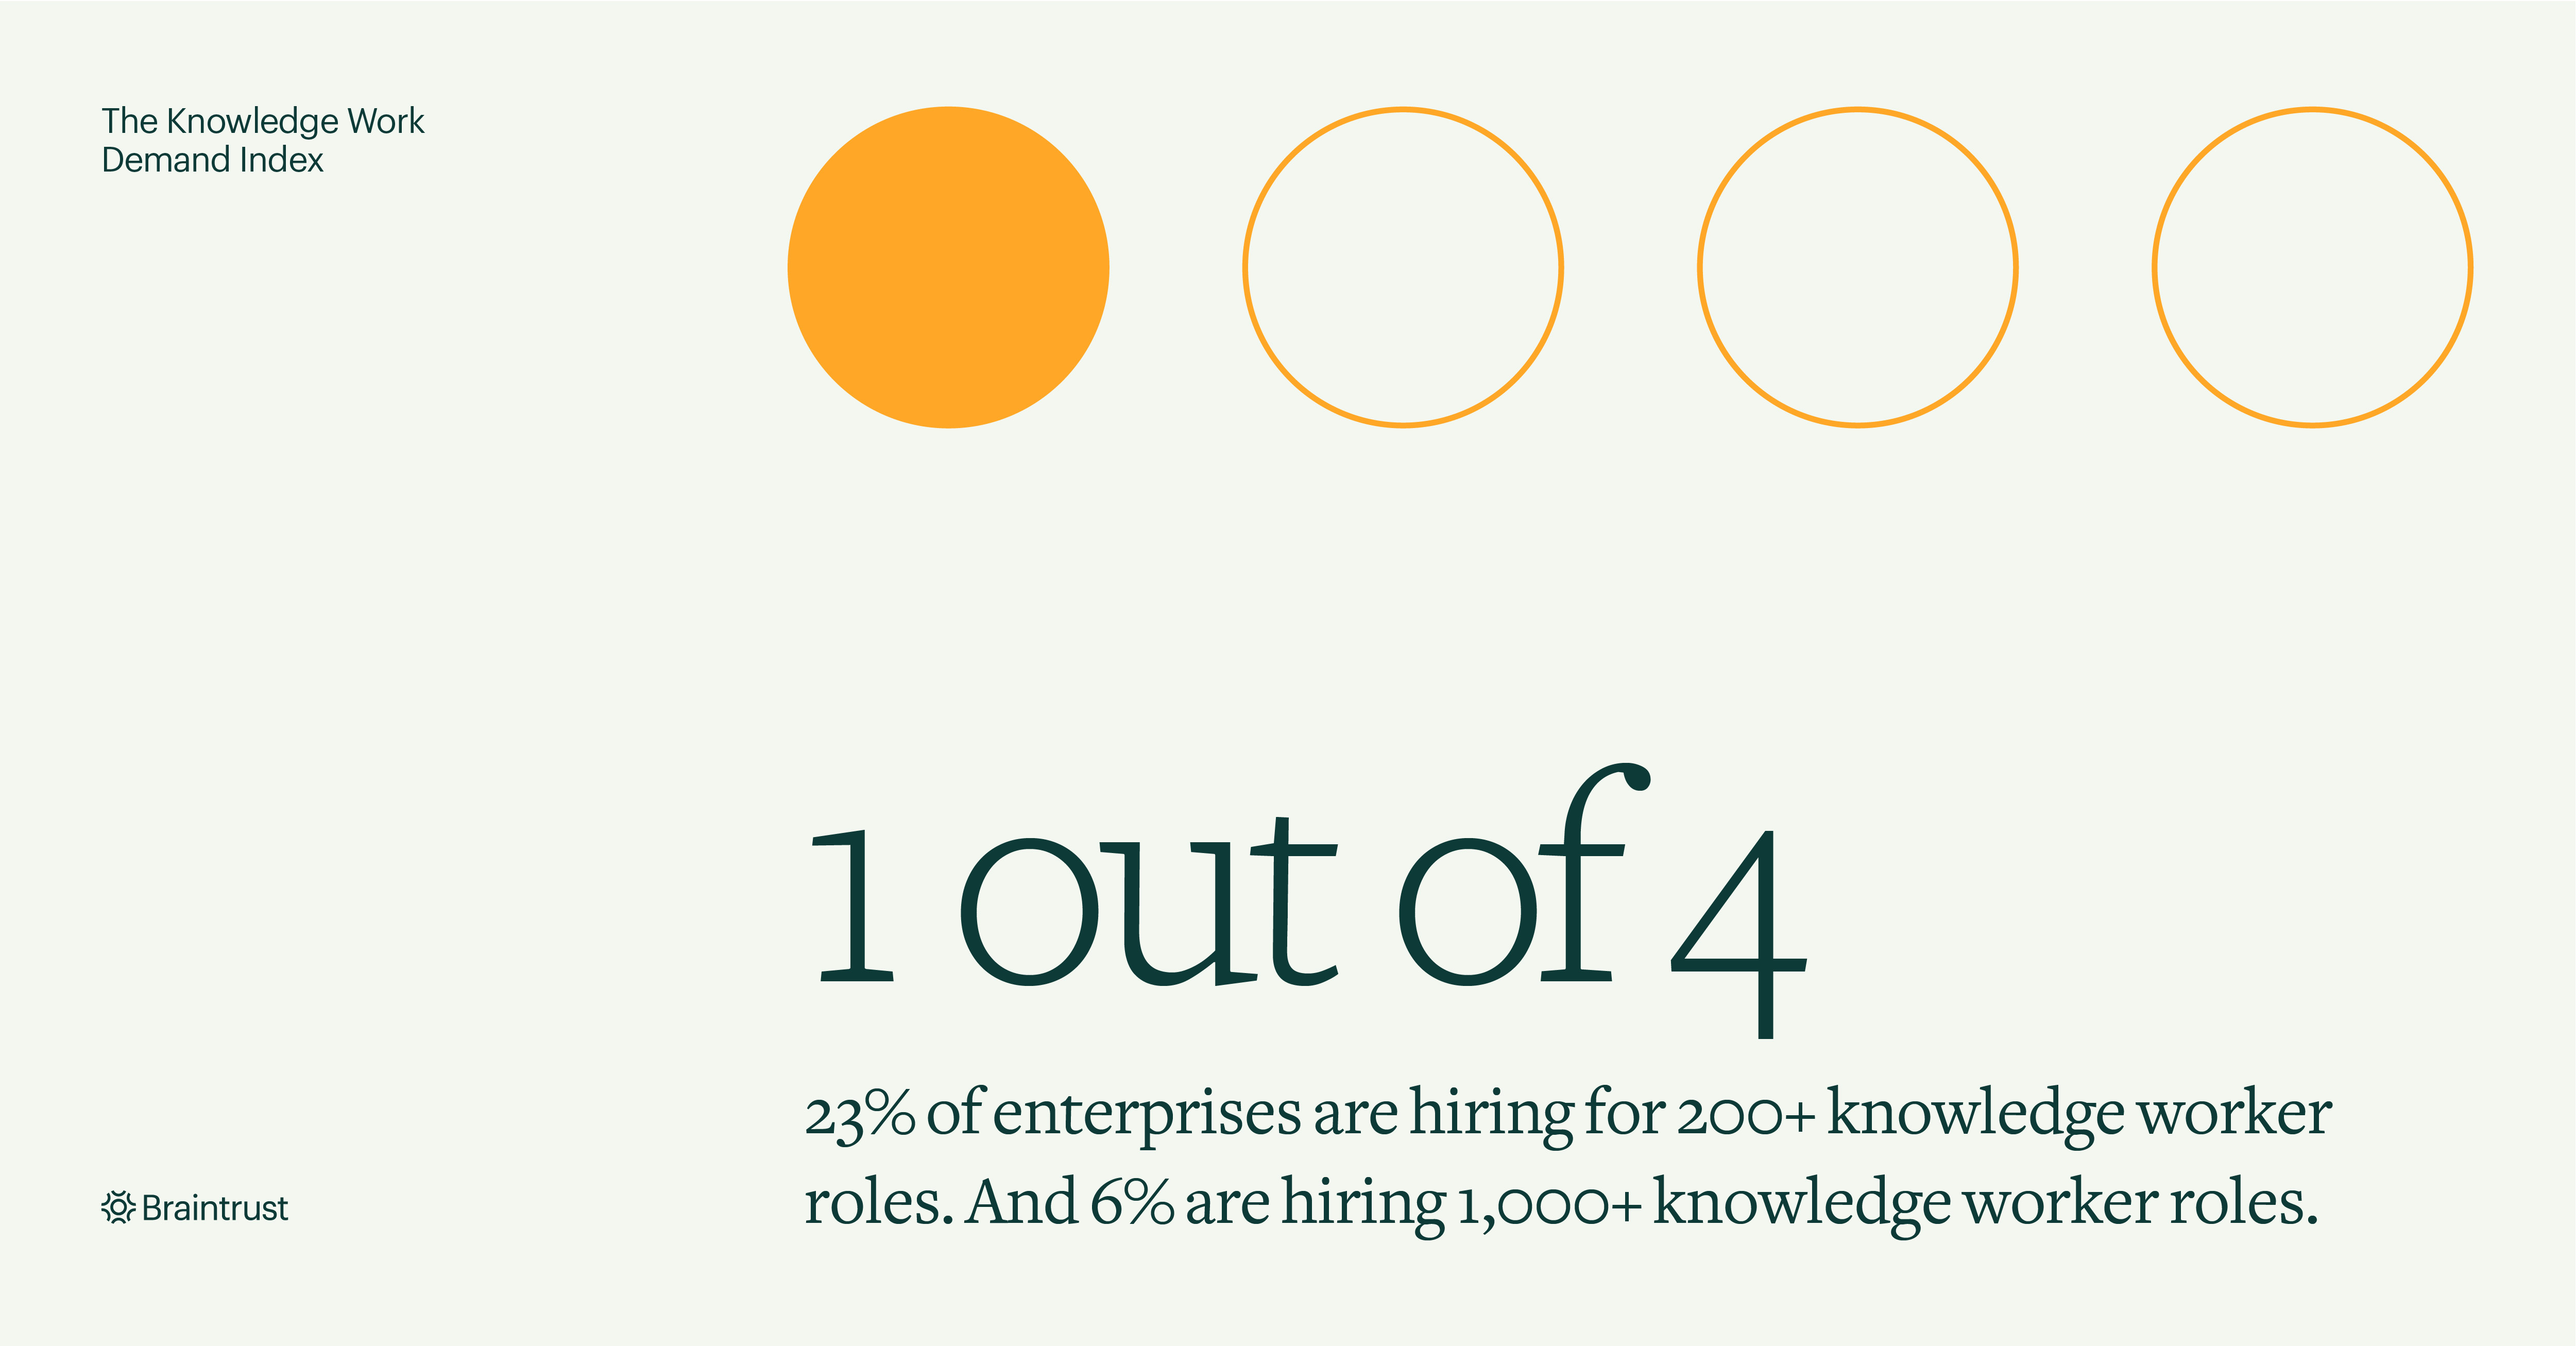 Braintrust announces Knowledge Work Demand Index reporting that 1 out of 4 enterprises are hiring for more than 200 knowledge worker roles